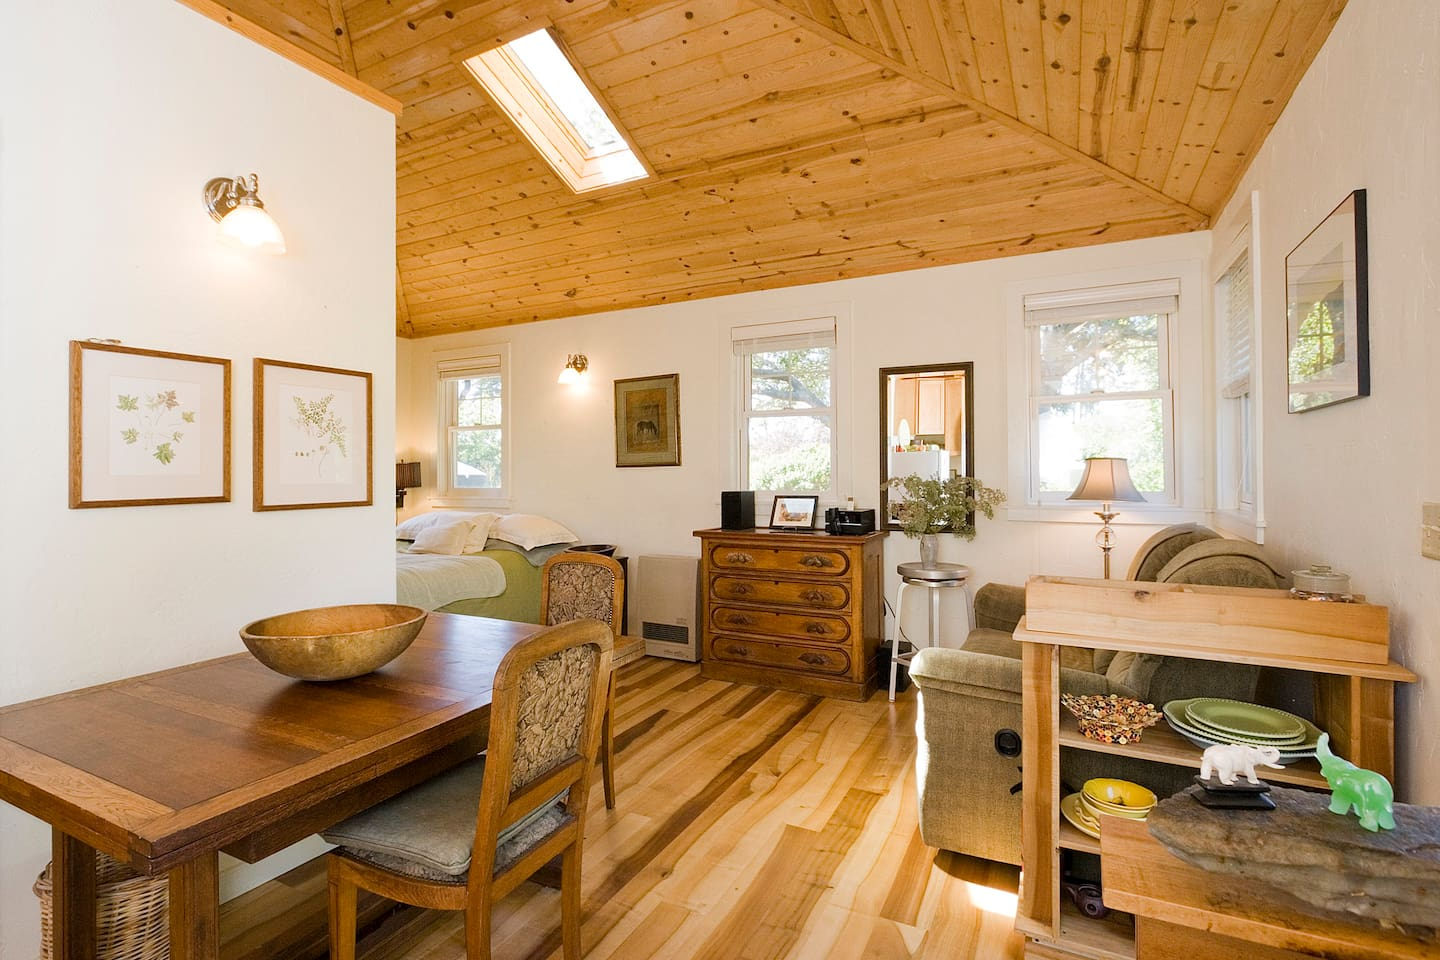 View of the dining table into the living area, showing the bay laurel floors.